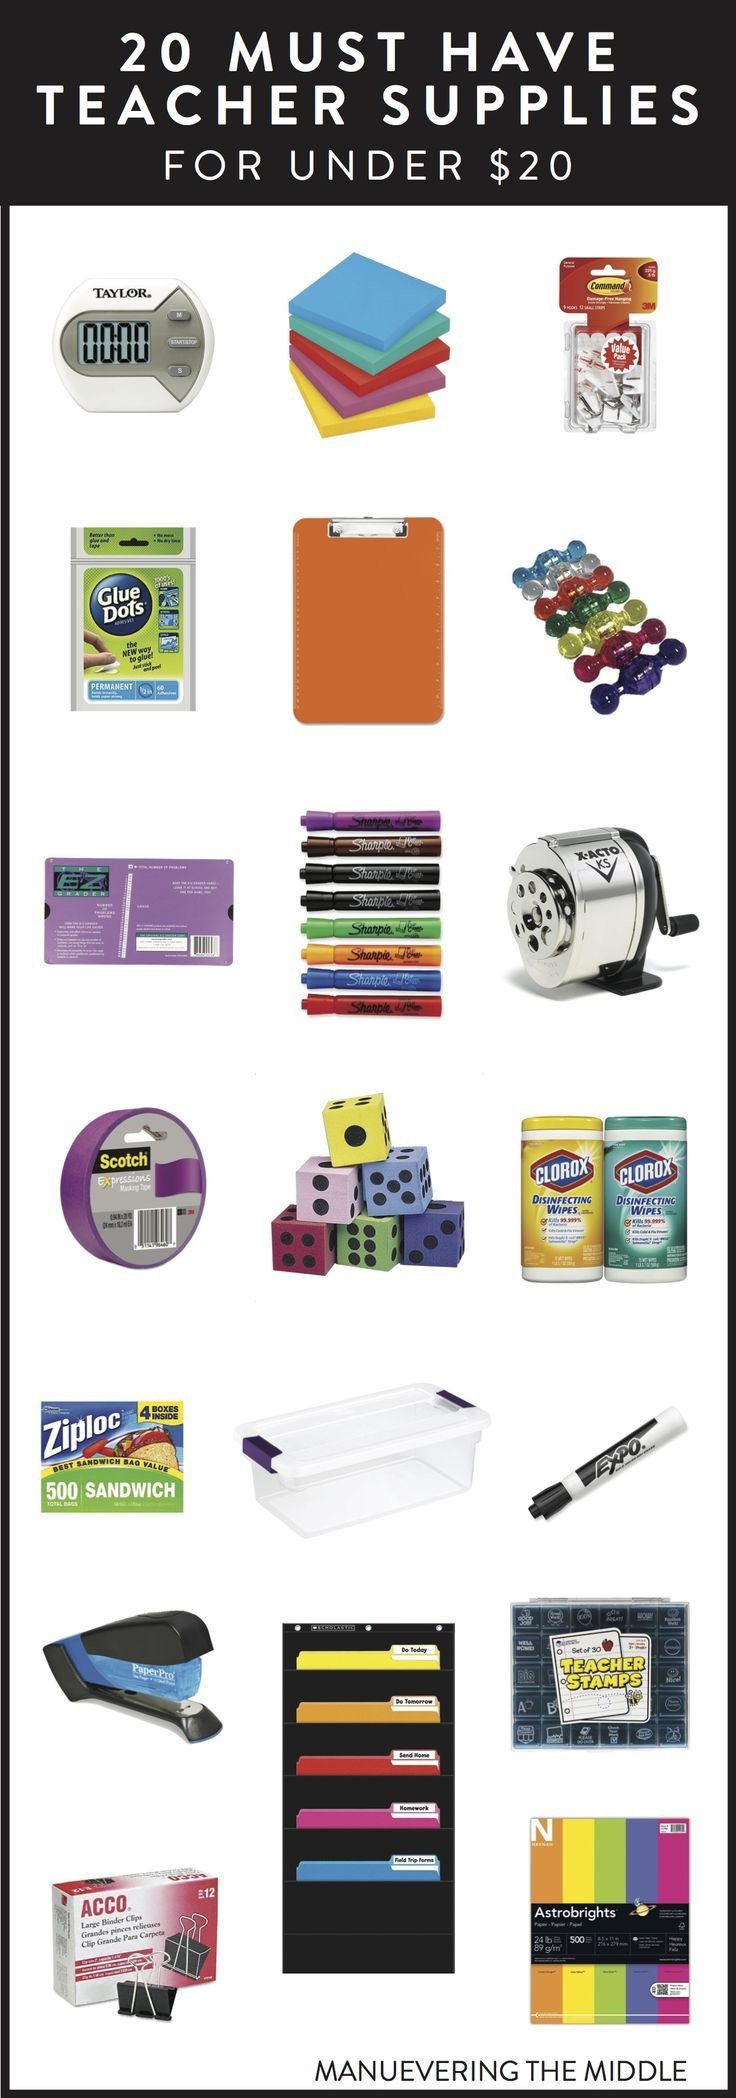 20 Teacher Supplies Under $20 - Must have school supplies to stock your classroom. | http://maneuveringthemiddle.com